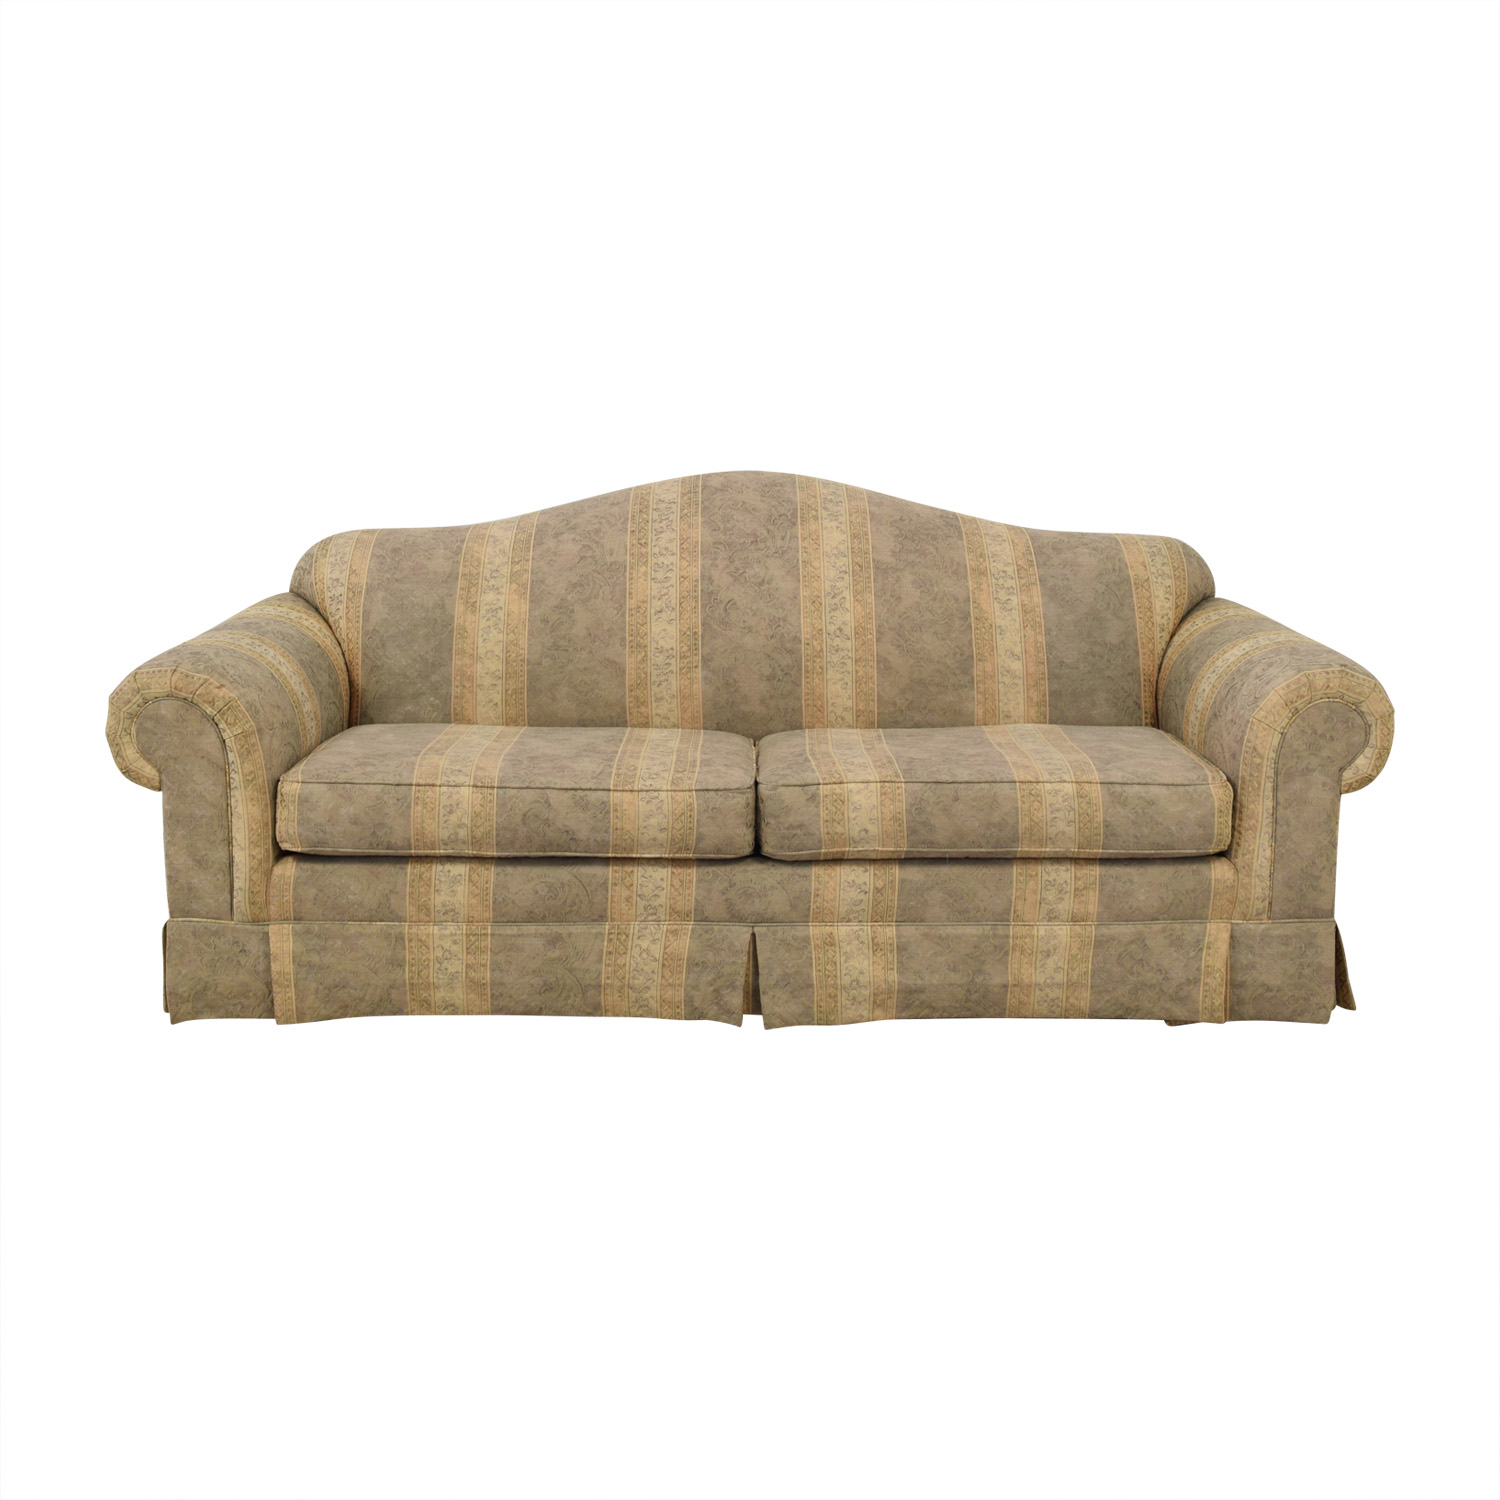 shop Thomasville Thomasville Impressions Regency Style Sofa online